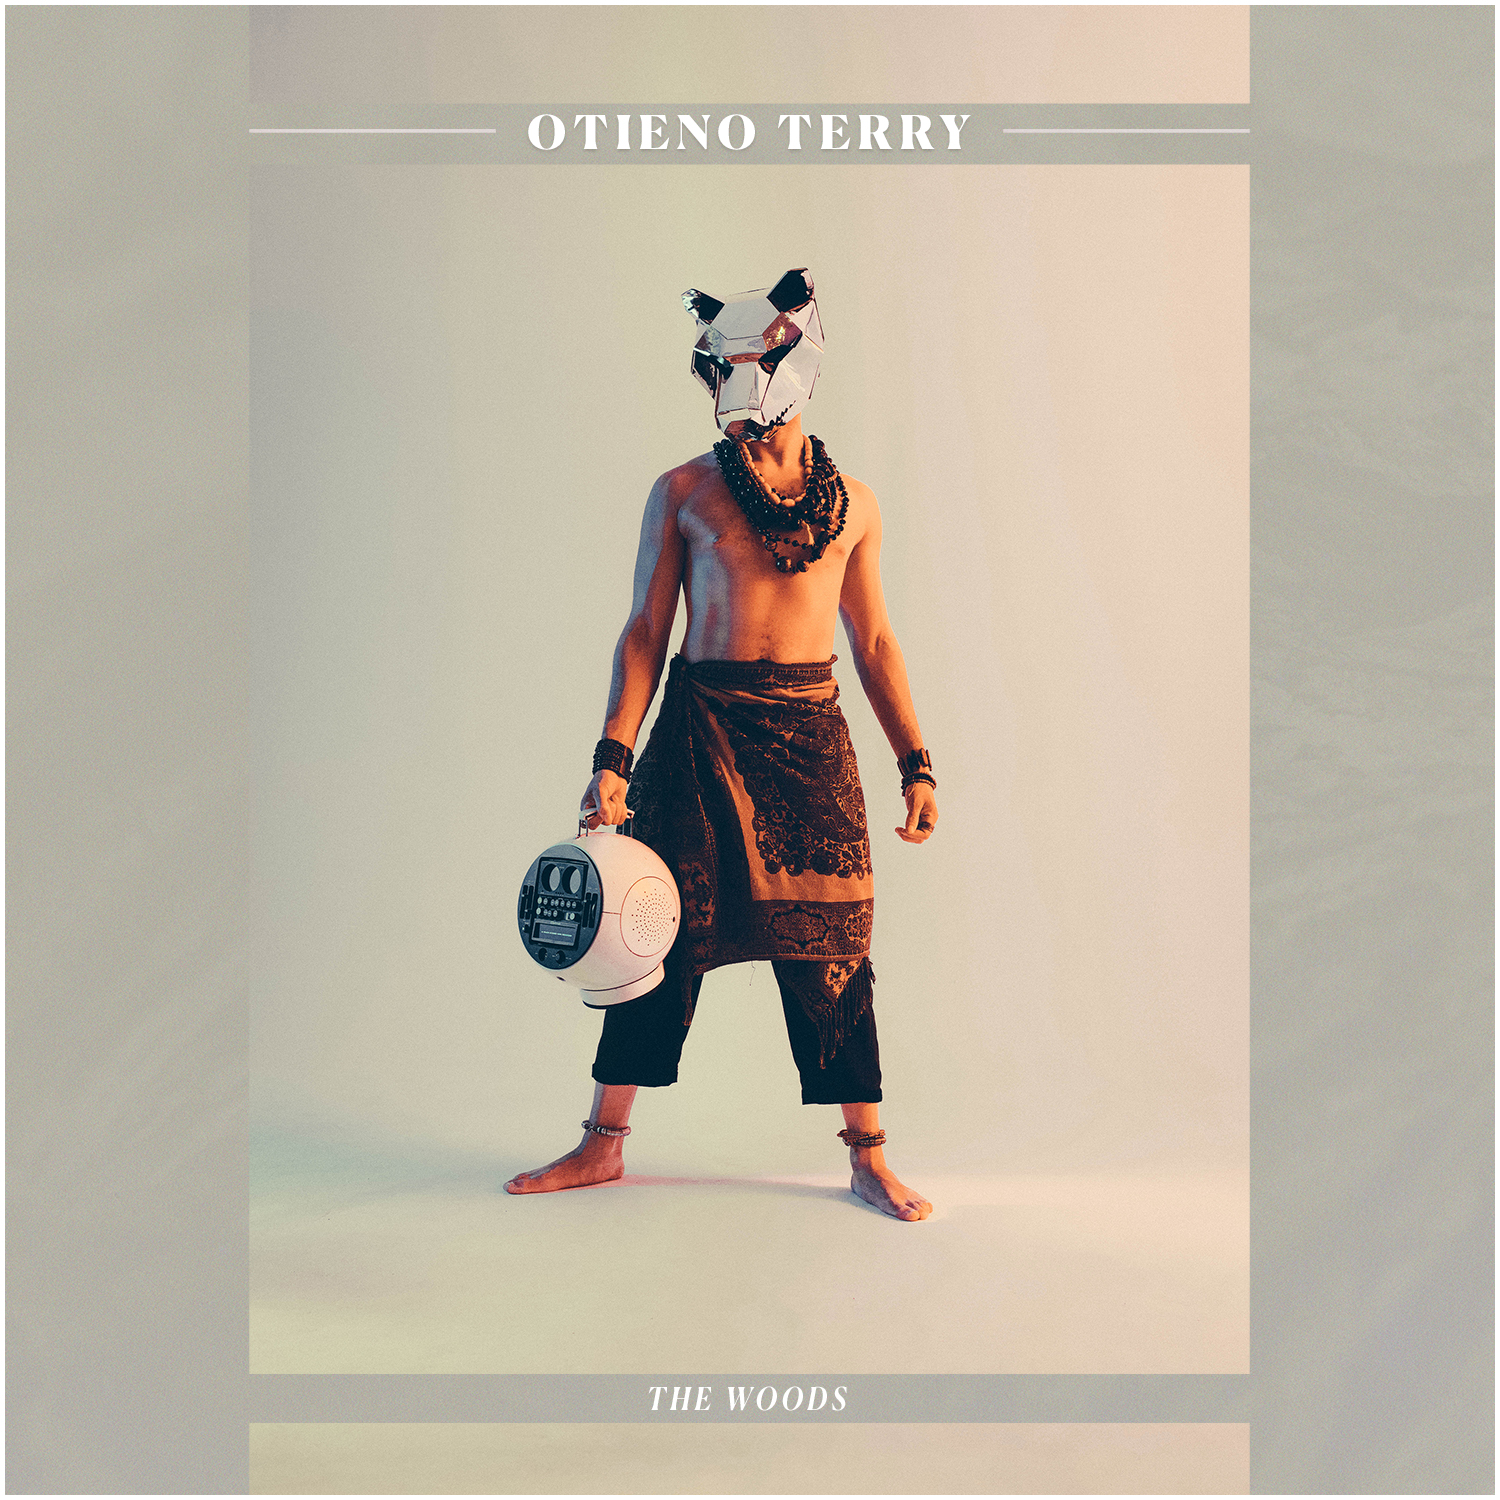 'THE WOODS' - Debut Album by Otieno Terry